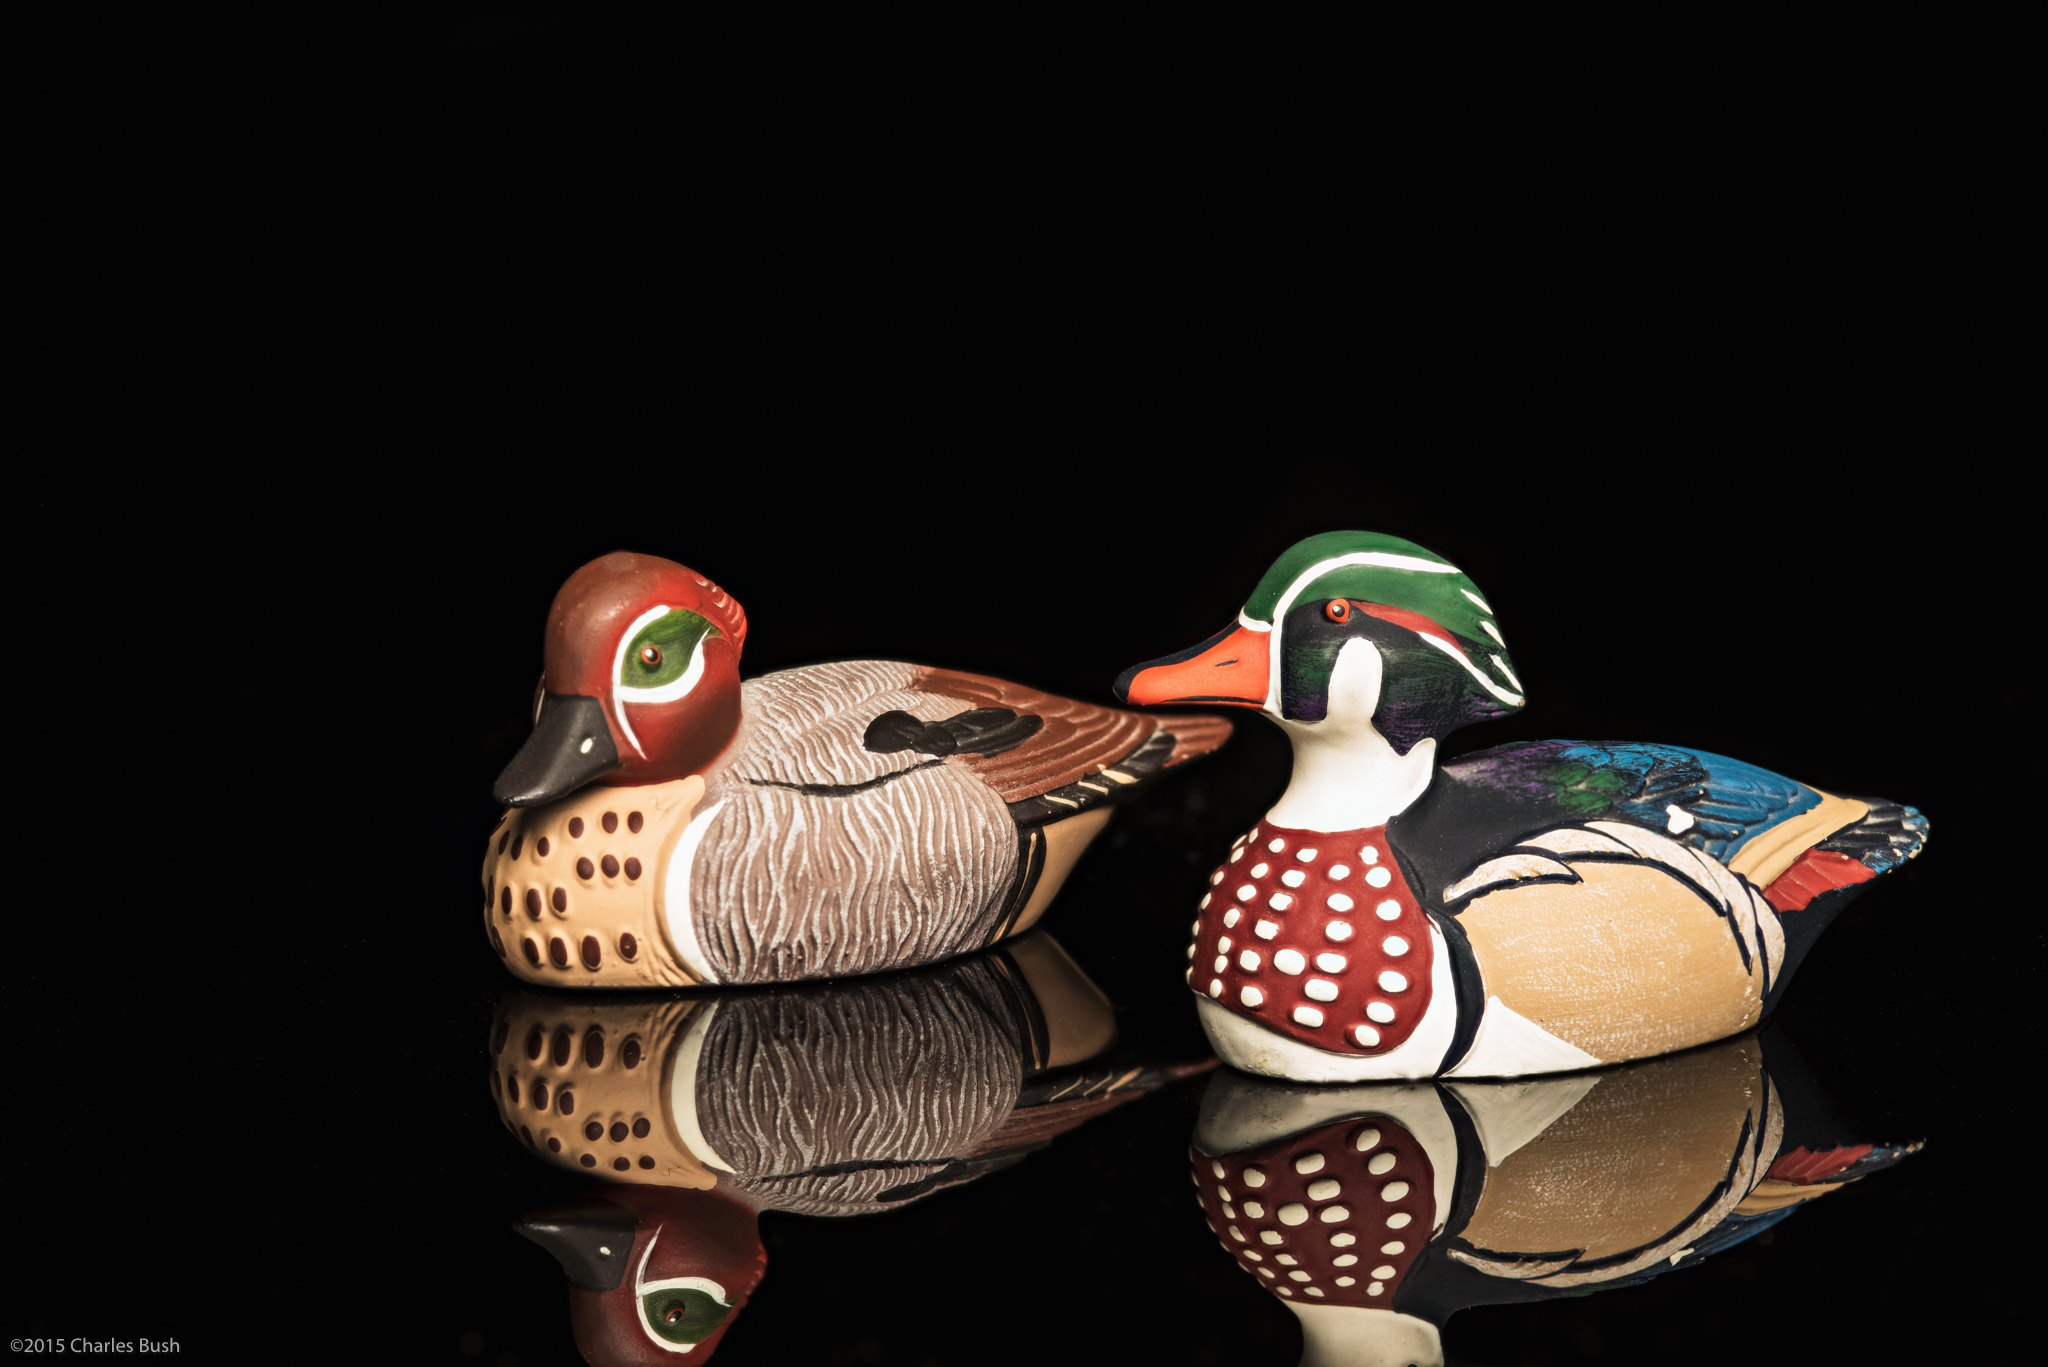 Toy Ducks Photographed using focus stacking